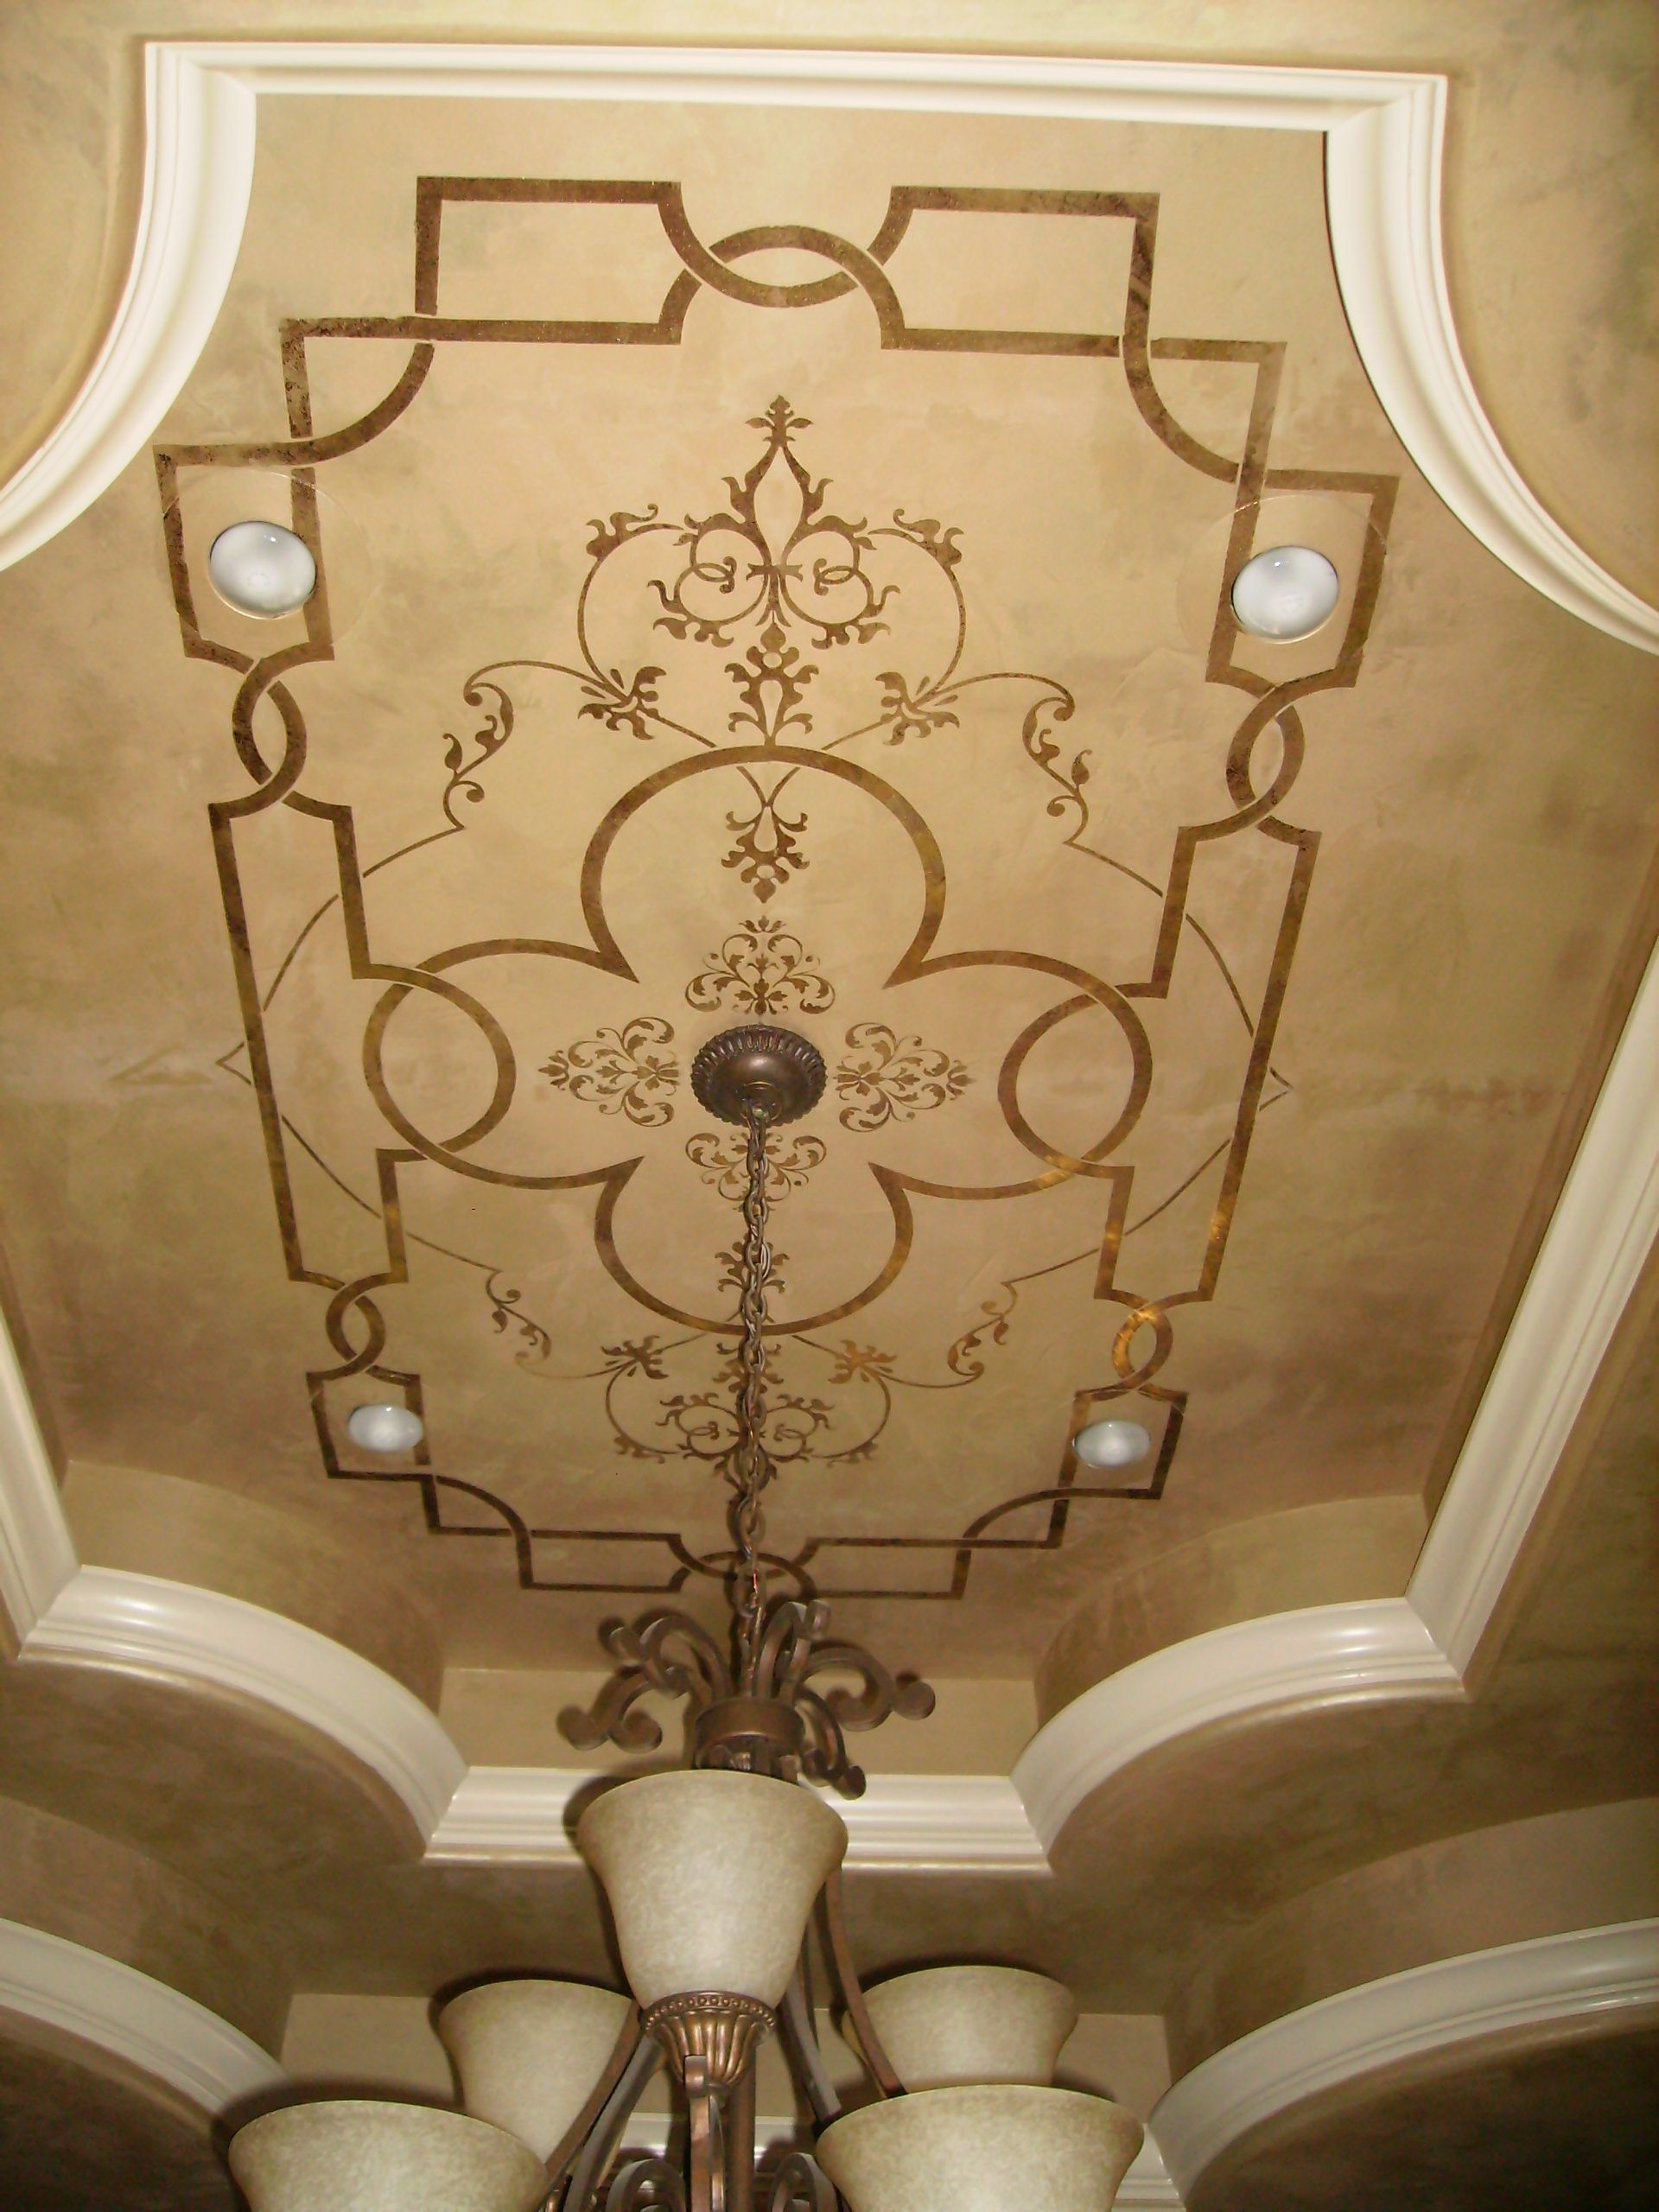 giovannetti decorative studio - metallic plaster ceiling with gold